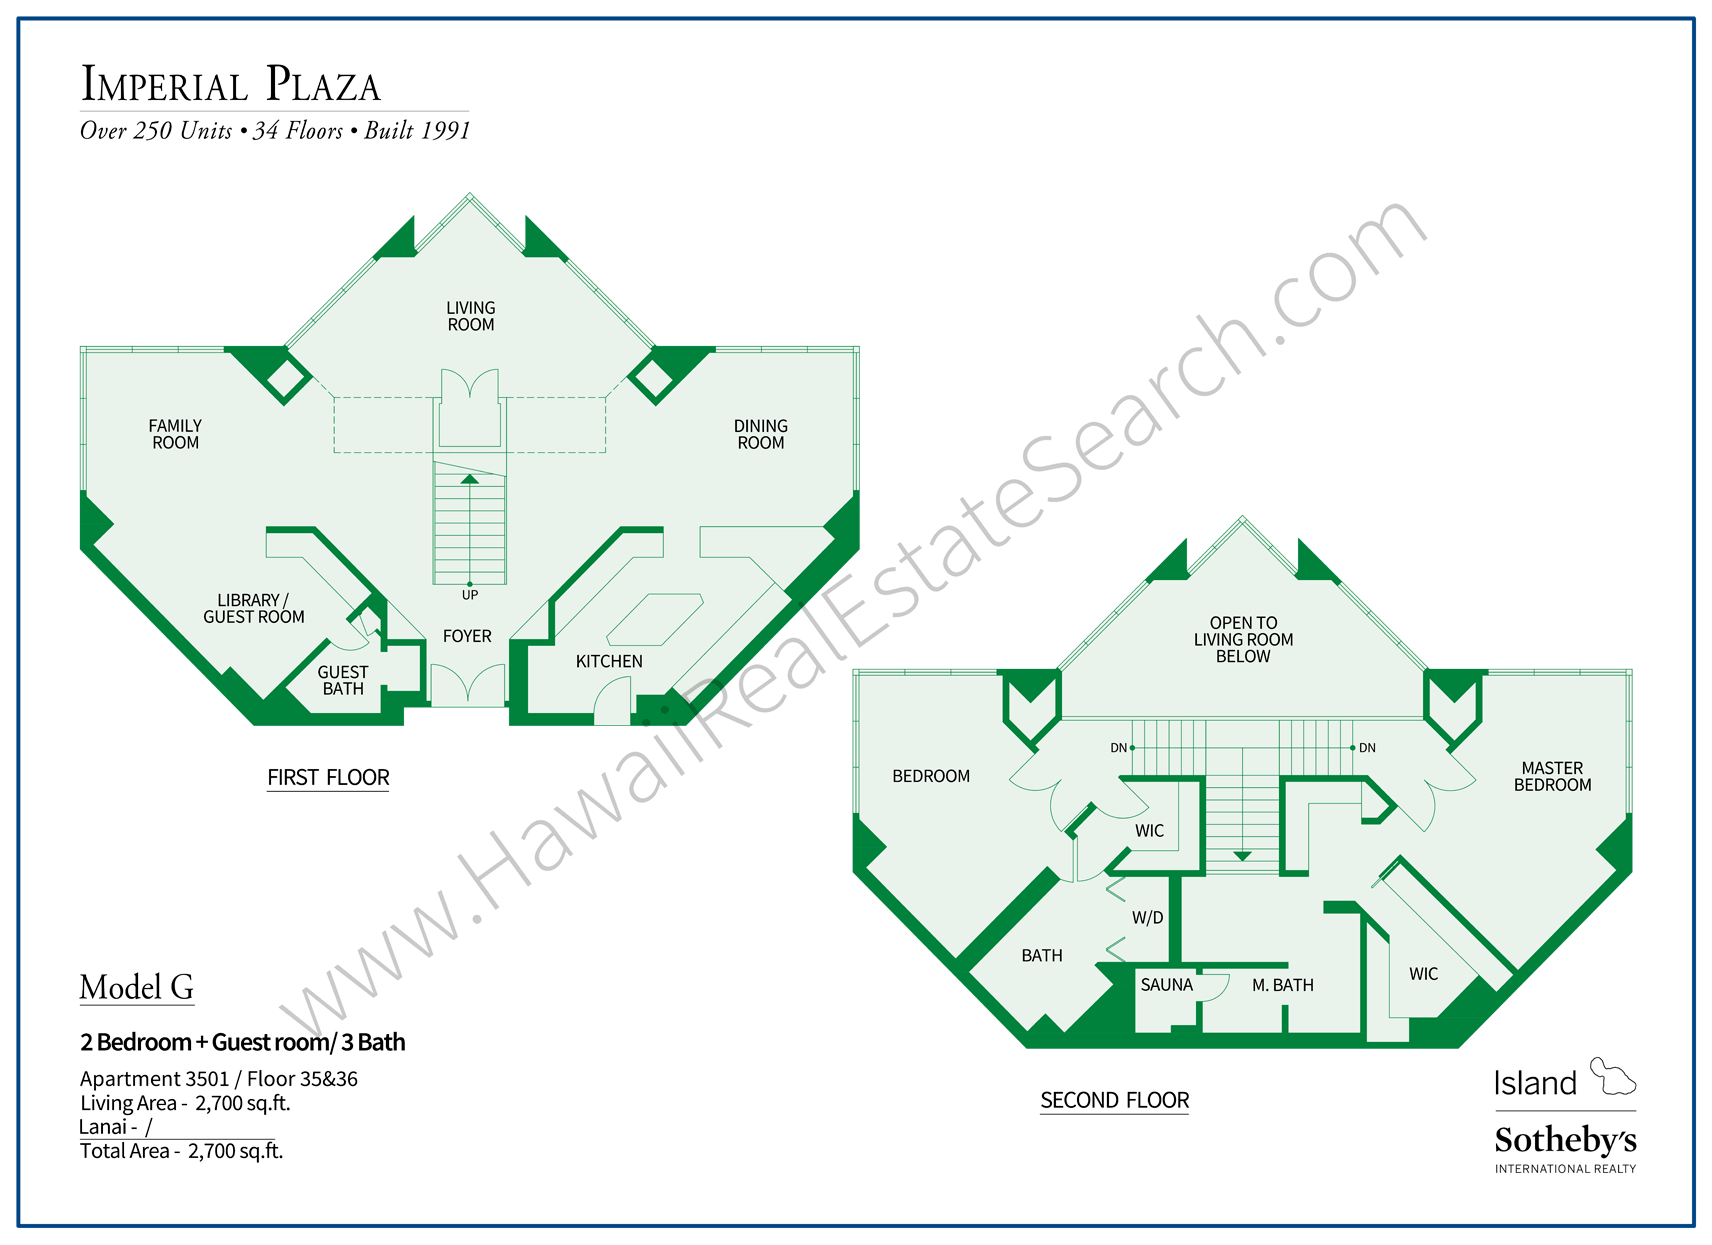 Imperial Plaza Floor Plan G